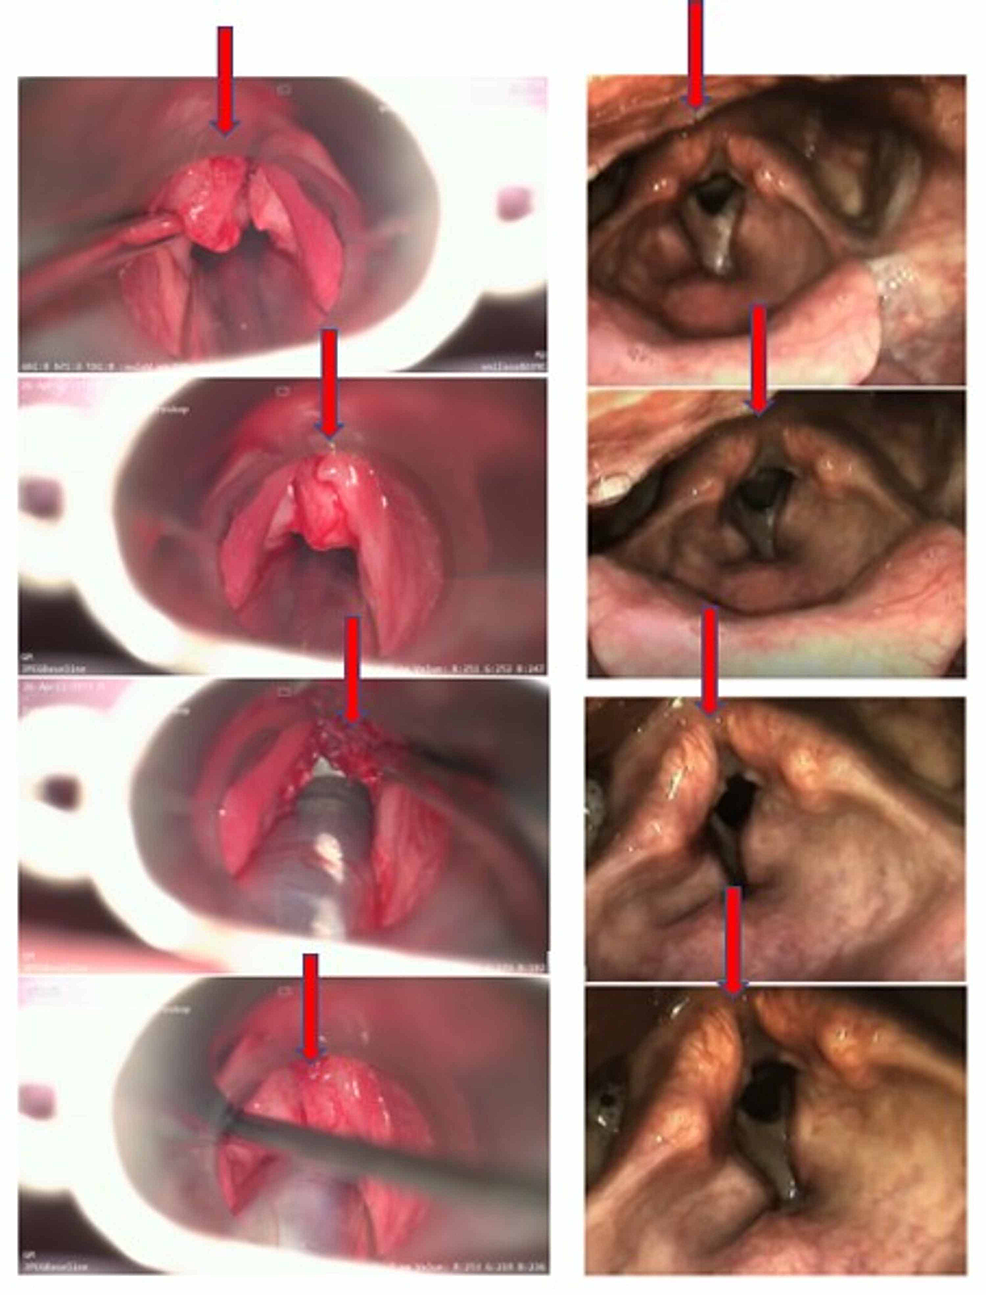 Comparative-pictures-taken-during-video-laryngoscopy-in-August-2017-versus-August-2020.